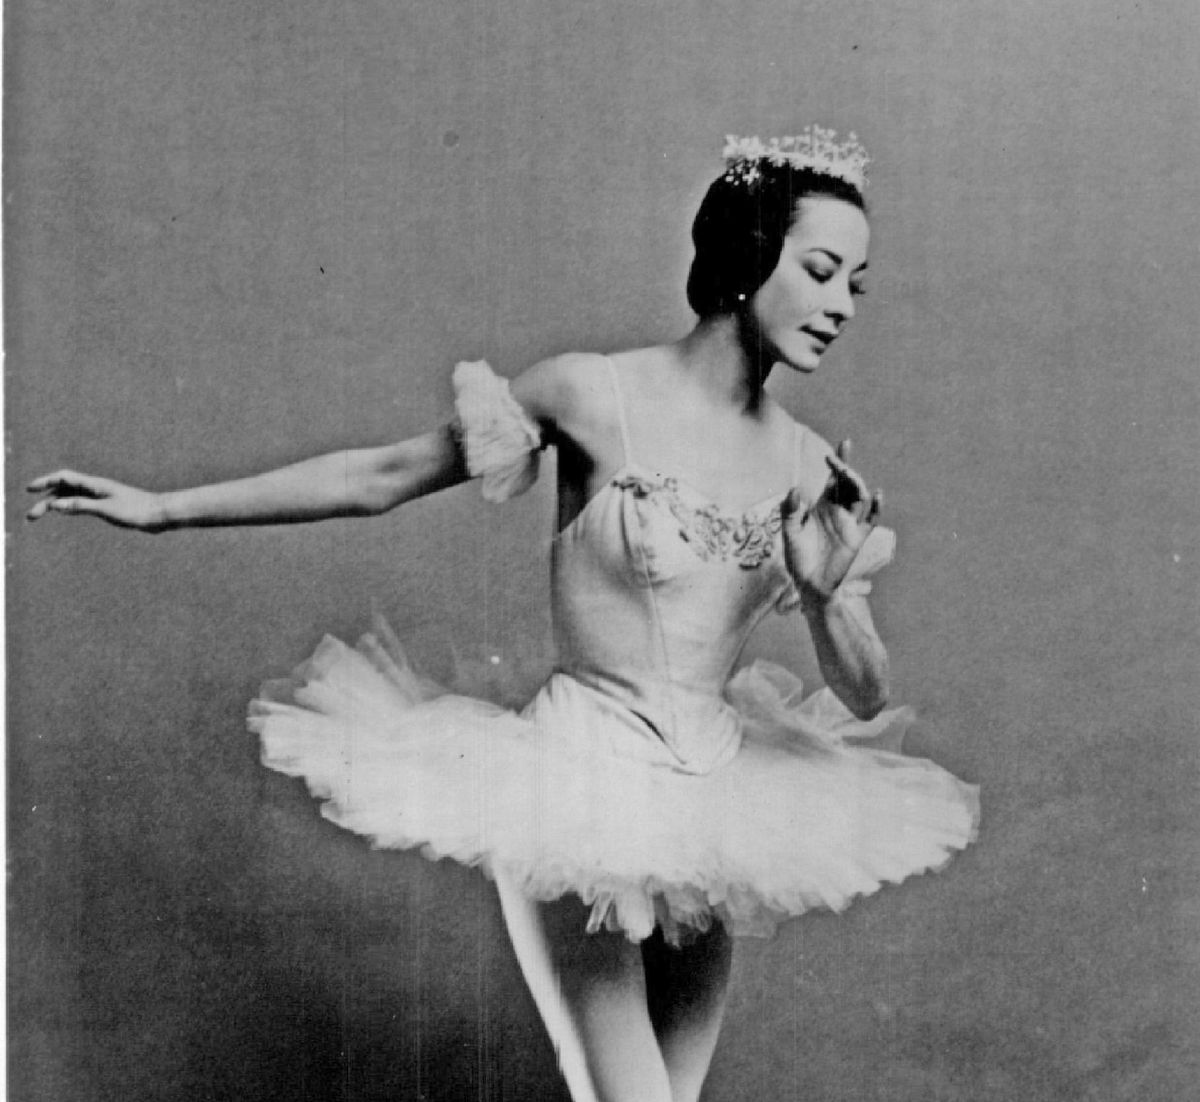 Ruth Ann Koesun, who danced with the American Ballet Theatre. | National Ballet of Illinois